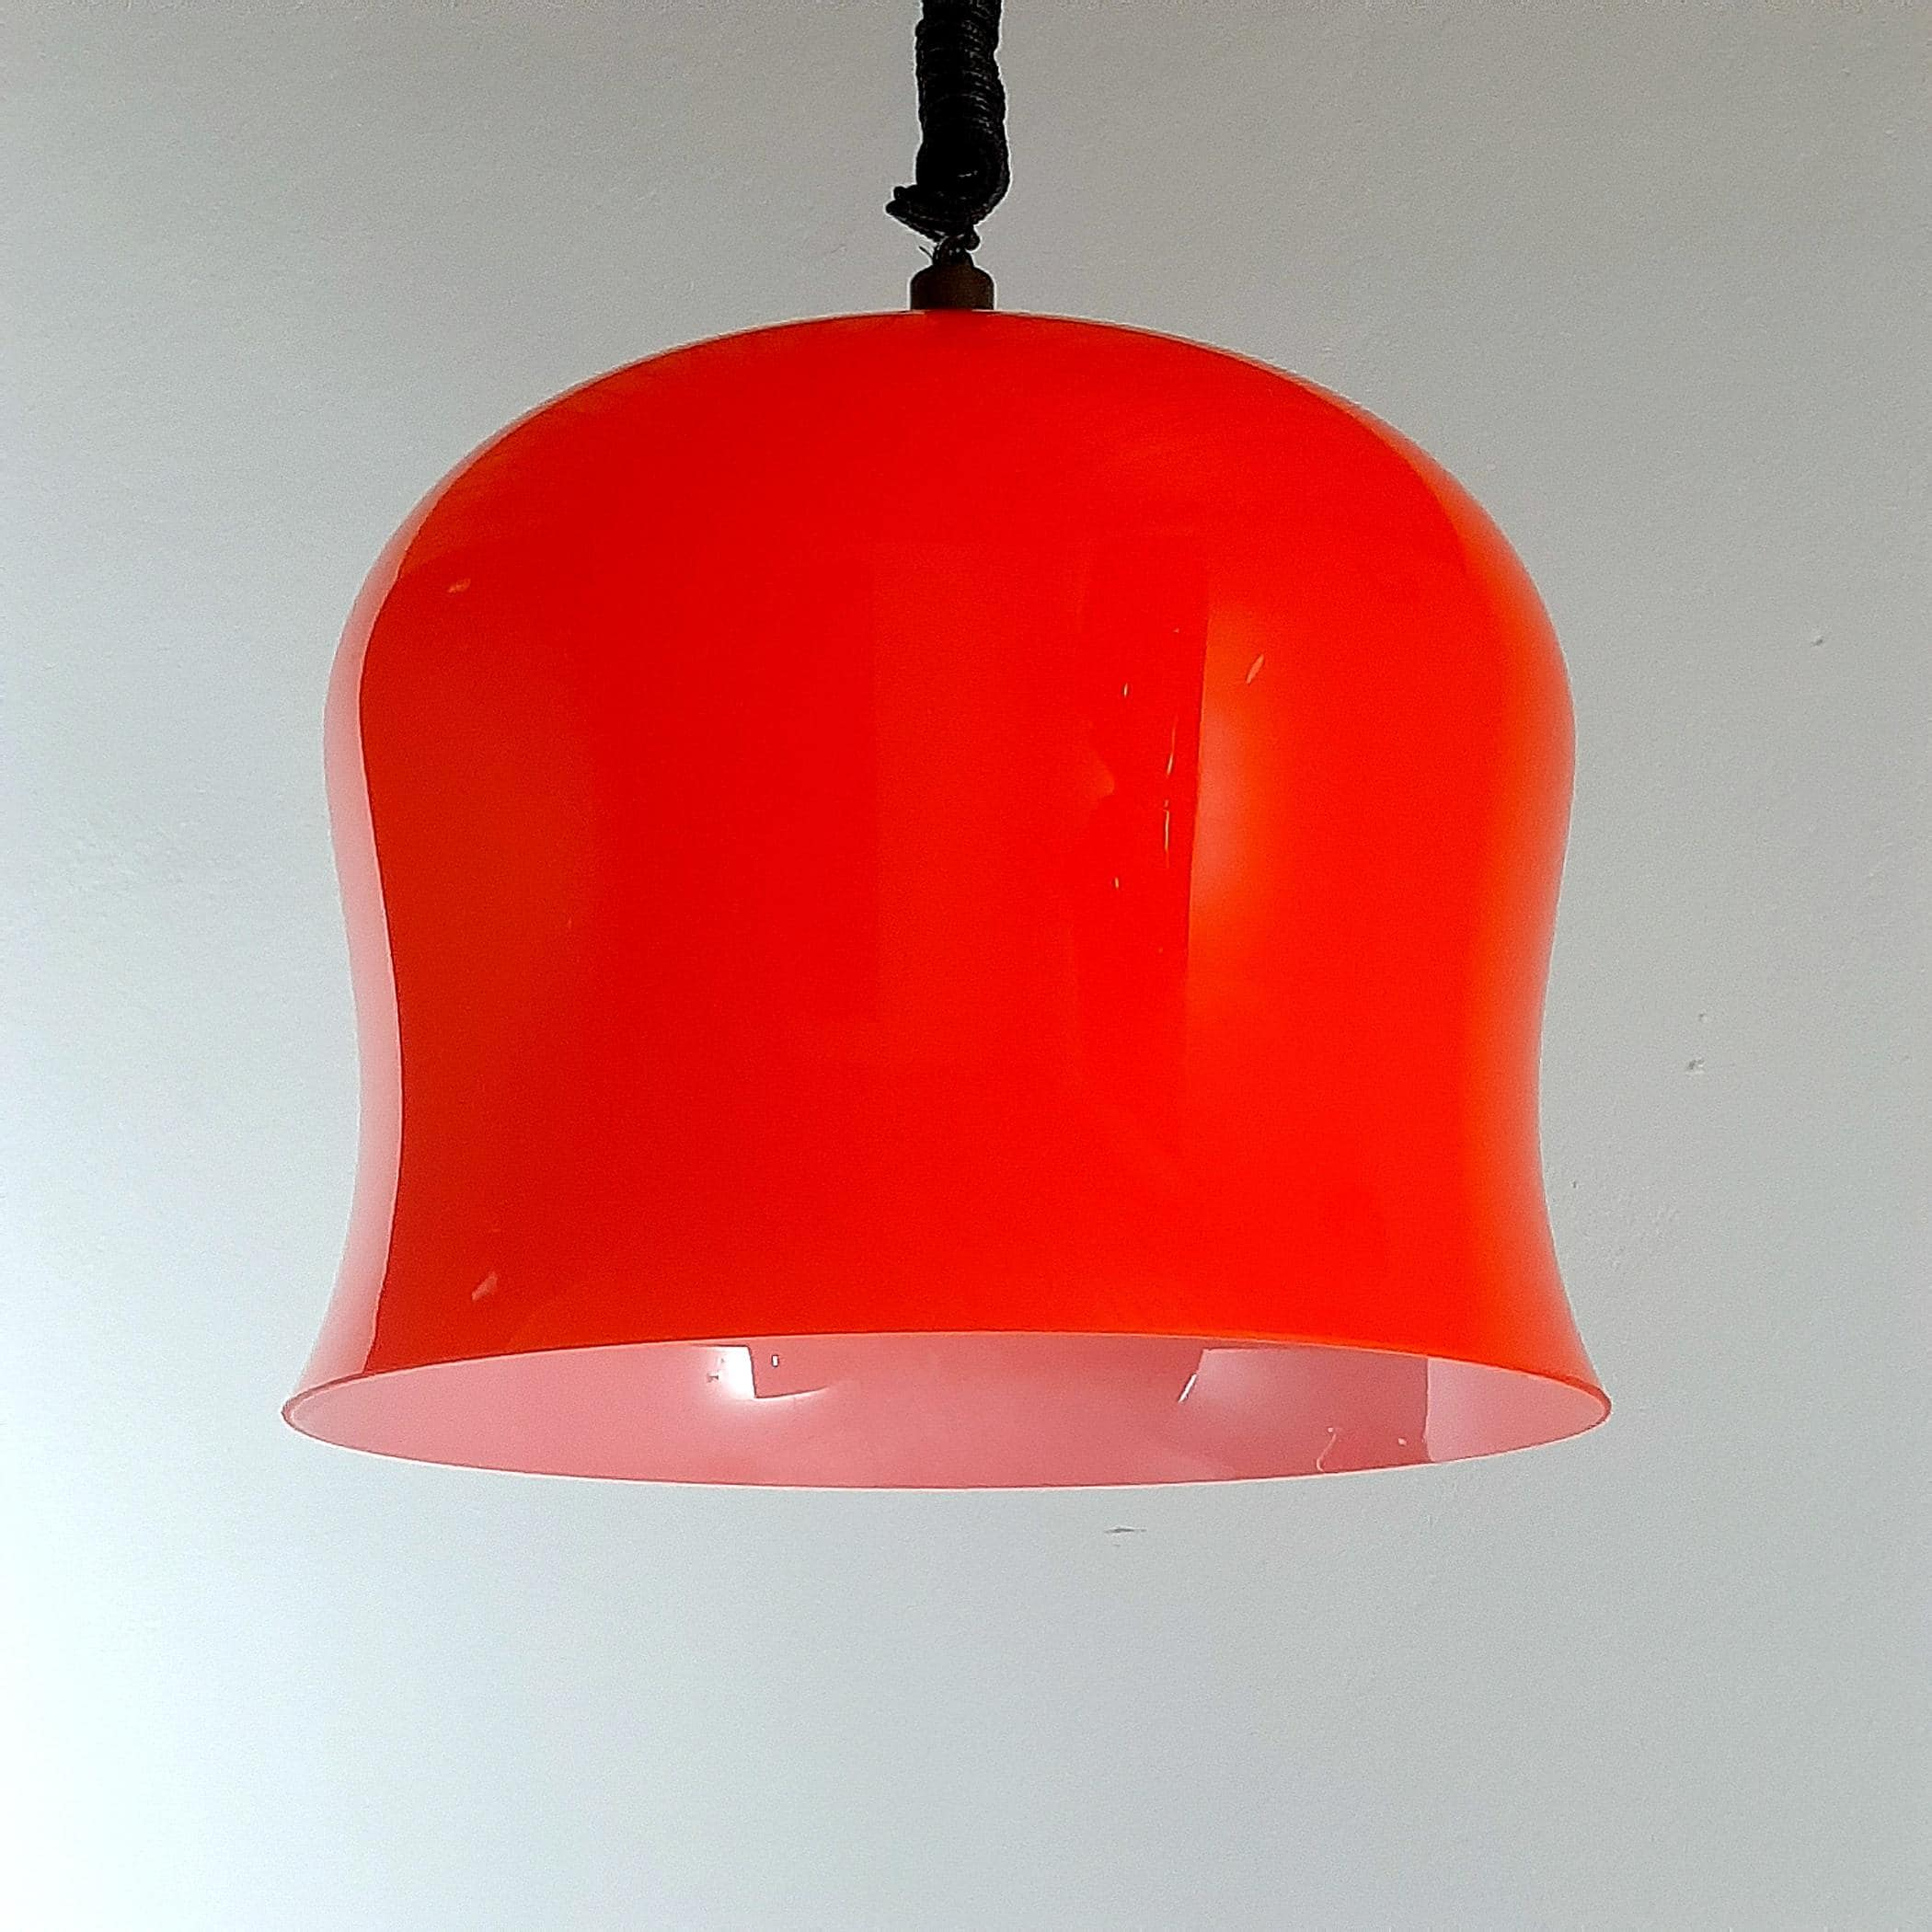 Vintage red glass pendant lamp Italy 1960s space age mid-century lighting